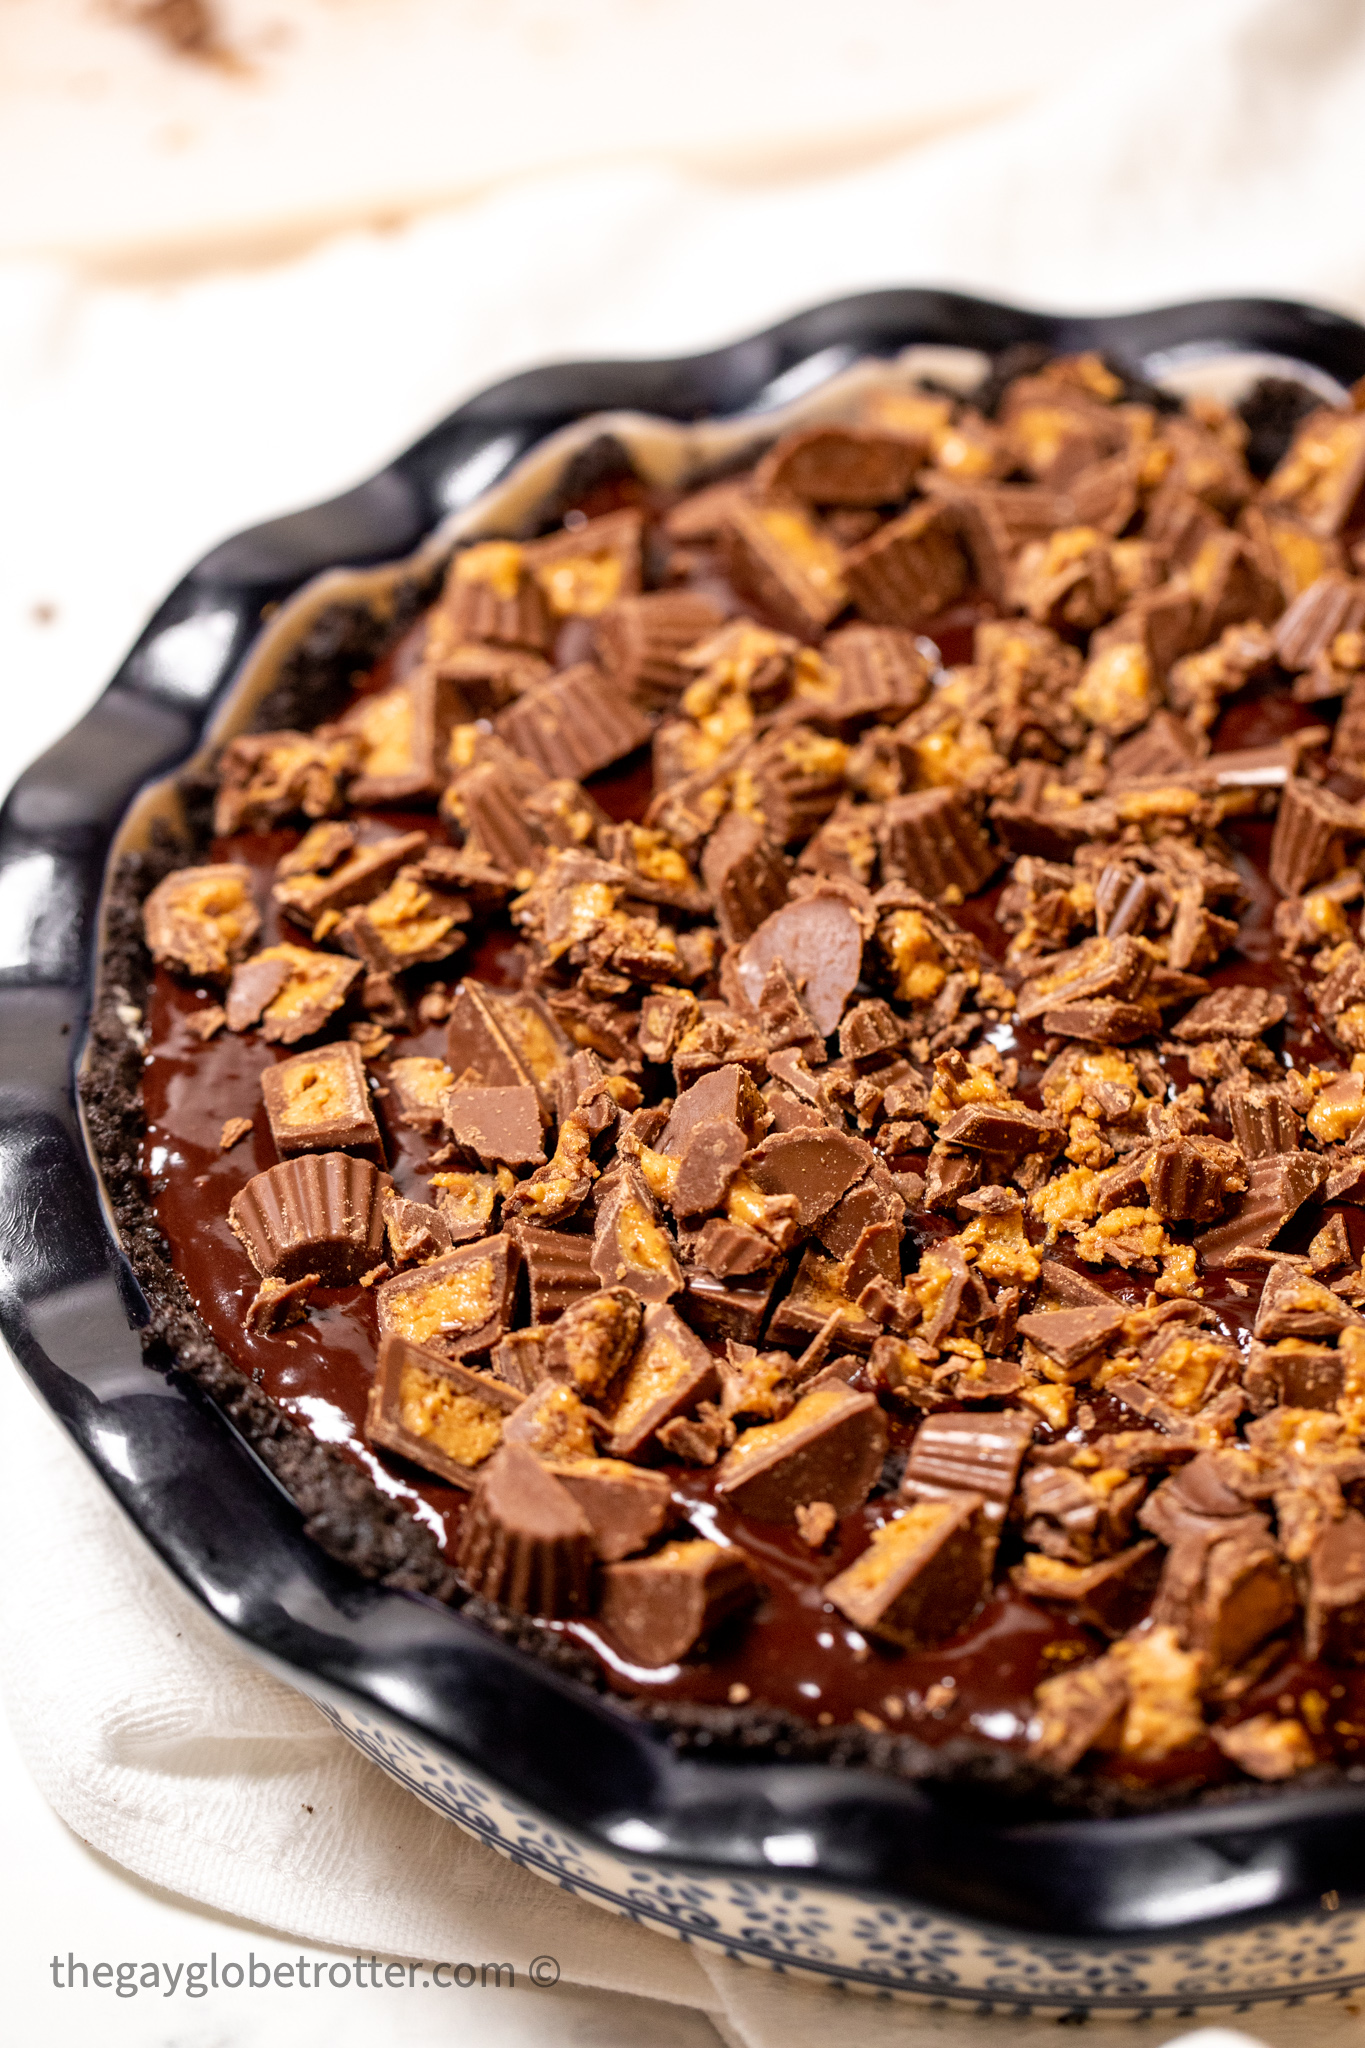 Chocolate peanut butter pie in a serving dish.